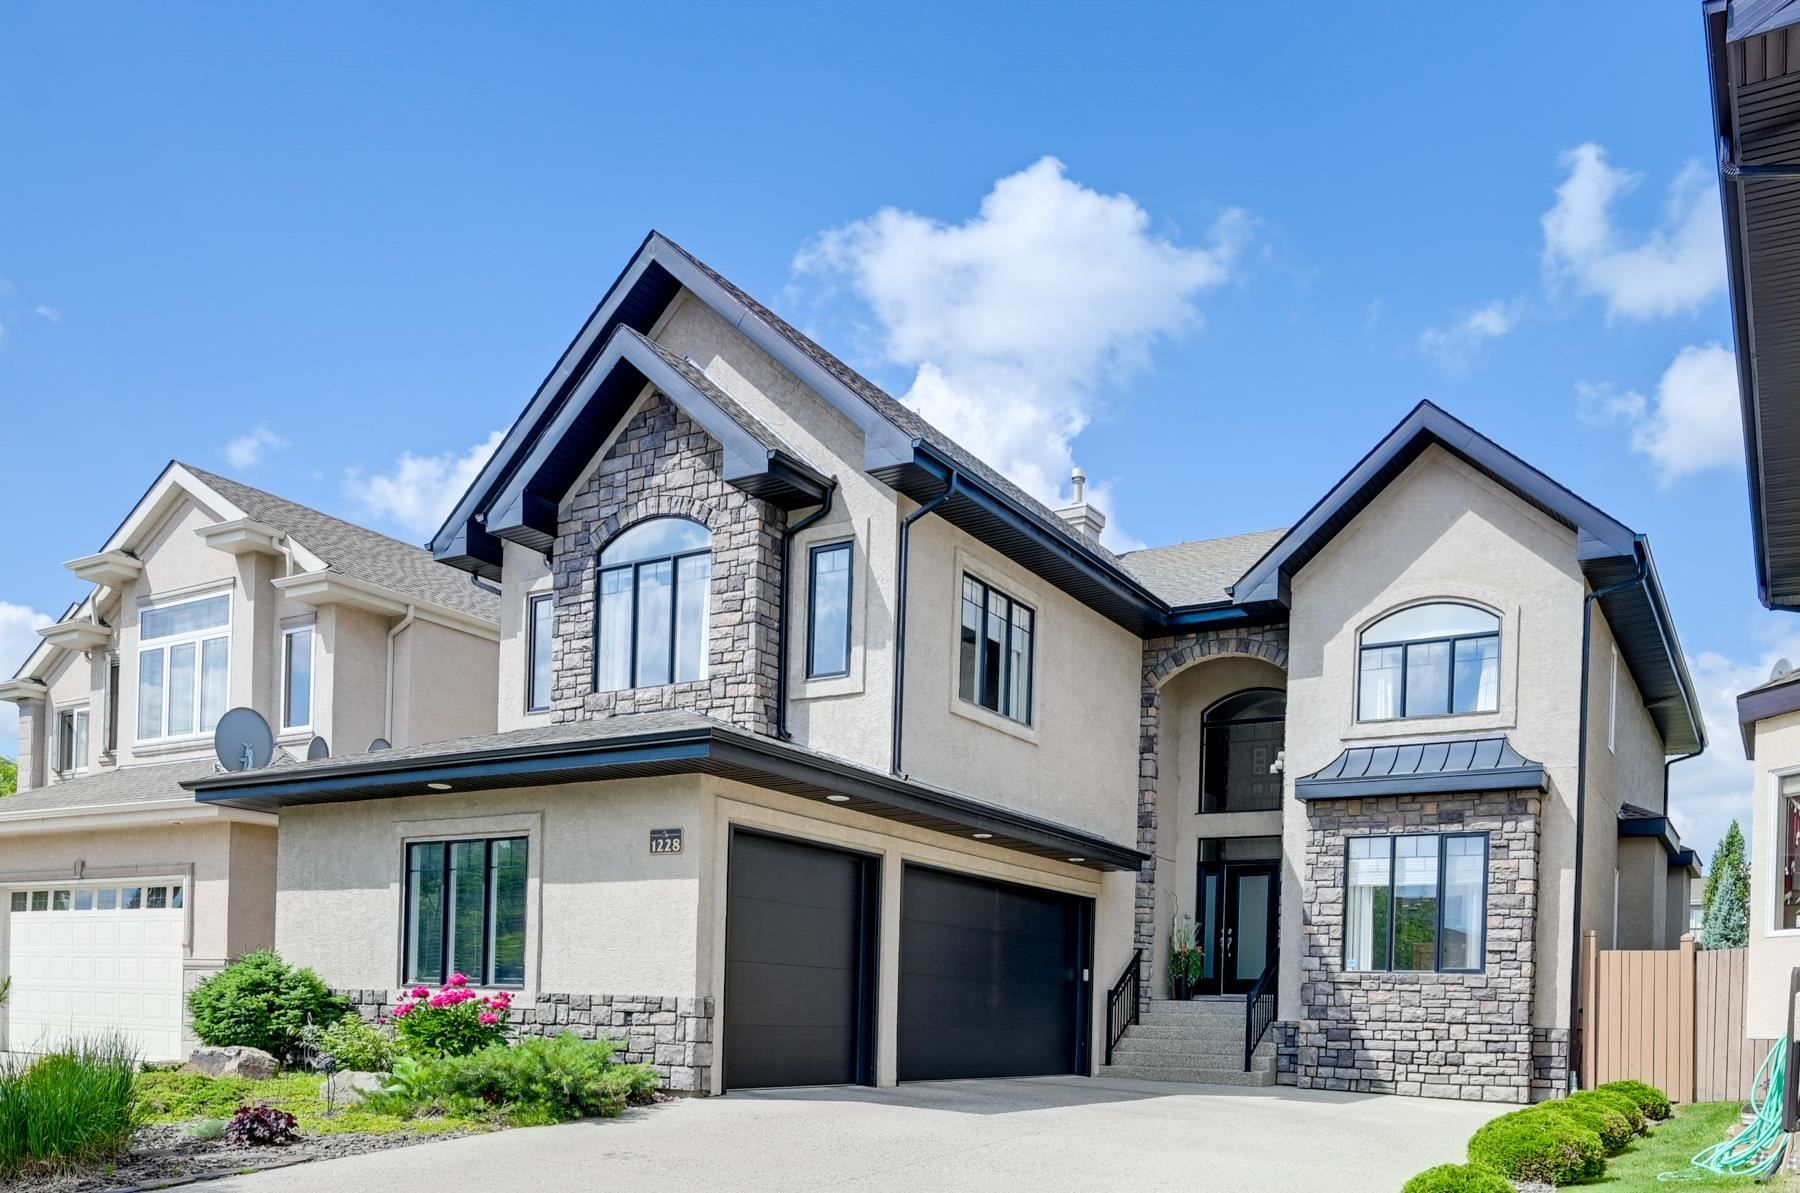 Main Photo: 1228 HOLLANDS Close in Edmonton: Zone 14 House for sale : MLS®# E4251775